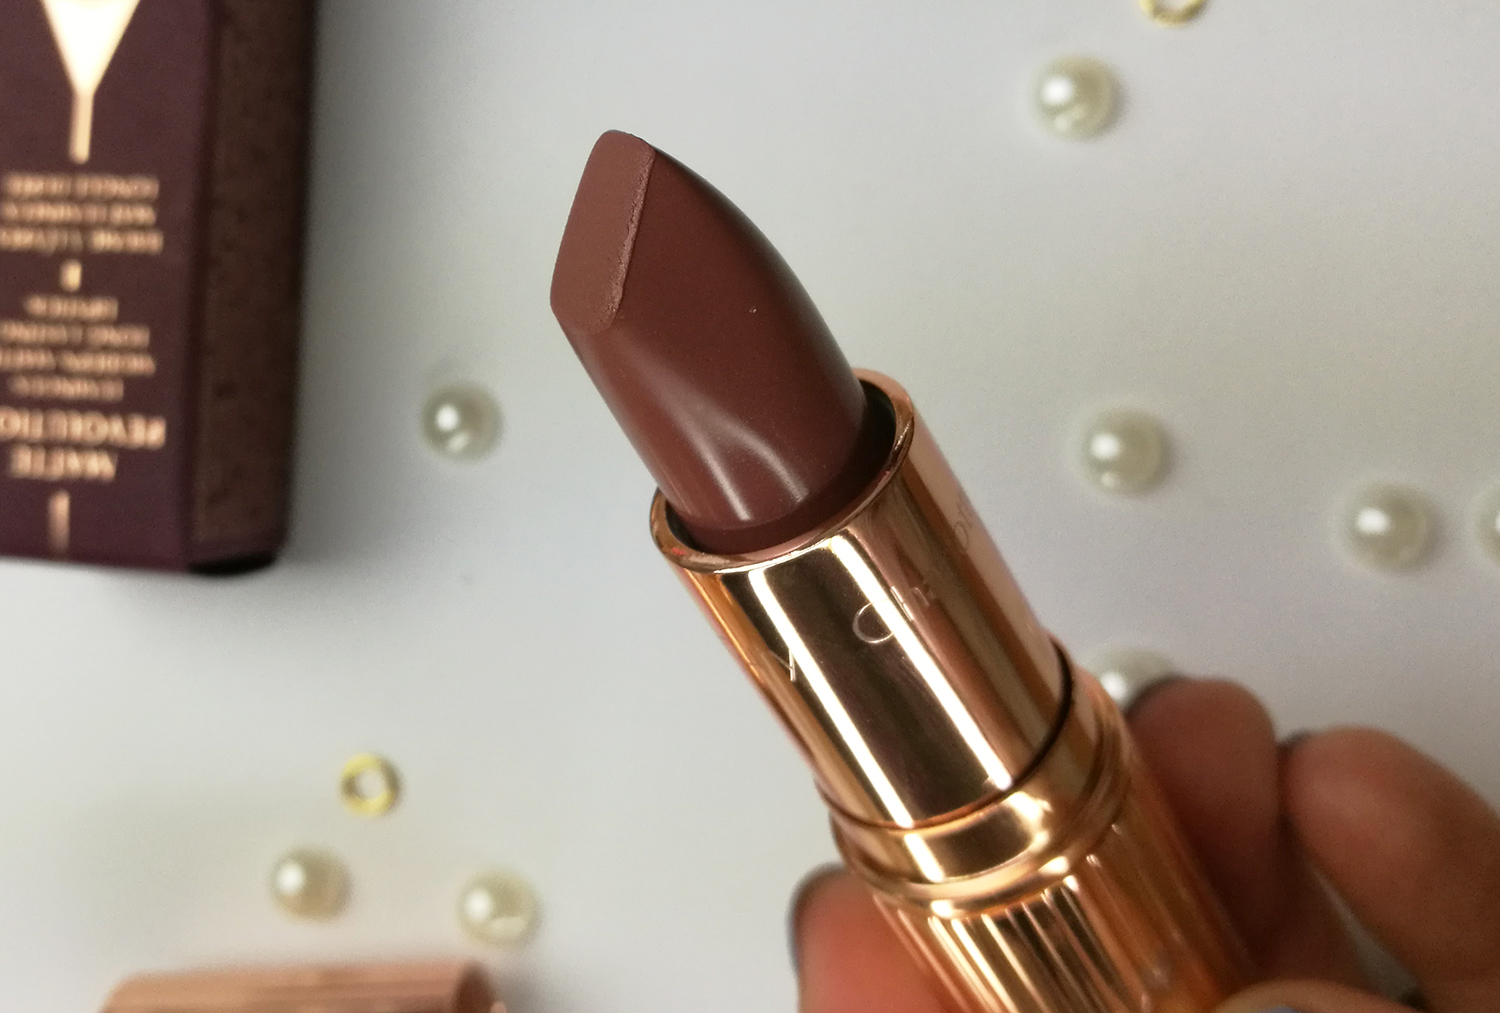 Charlotte Tilbury Matte Revolution Very Victoria review and swatches  on lips